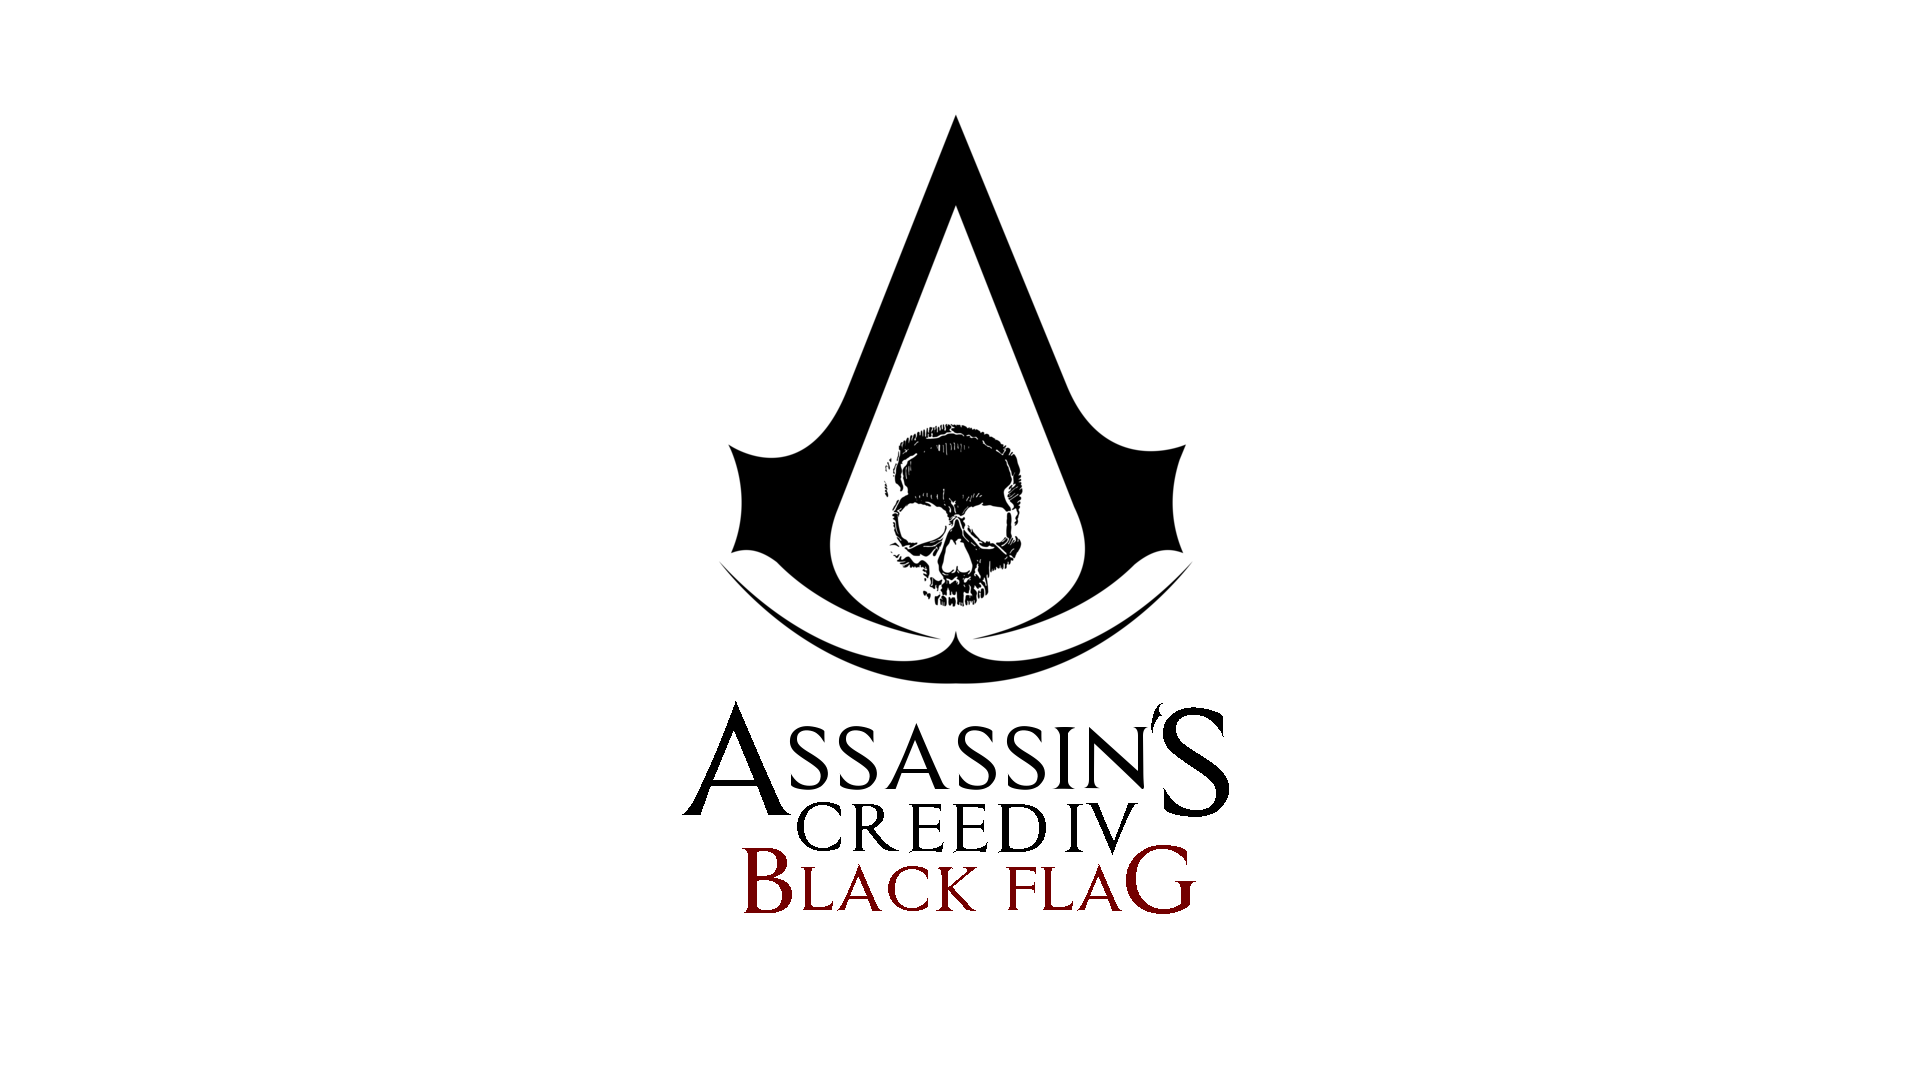 Assassin S Creed 4 Black Flag Simple Wallpaper By Thejackmoriarty On Deviantart